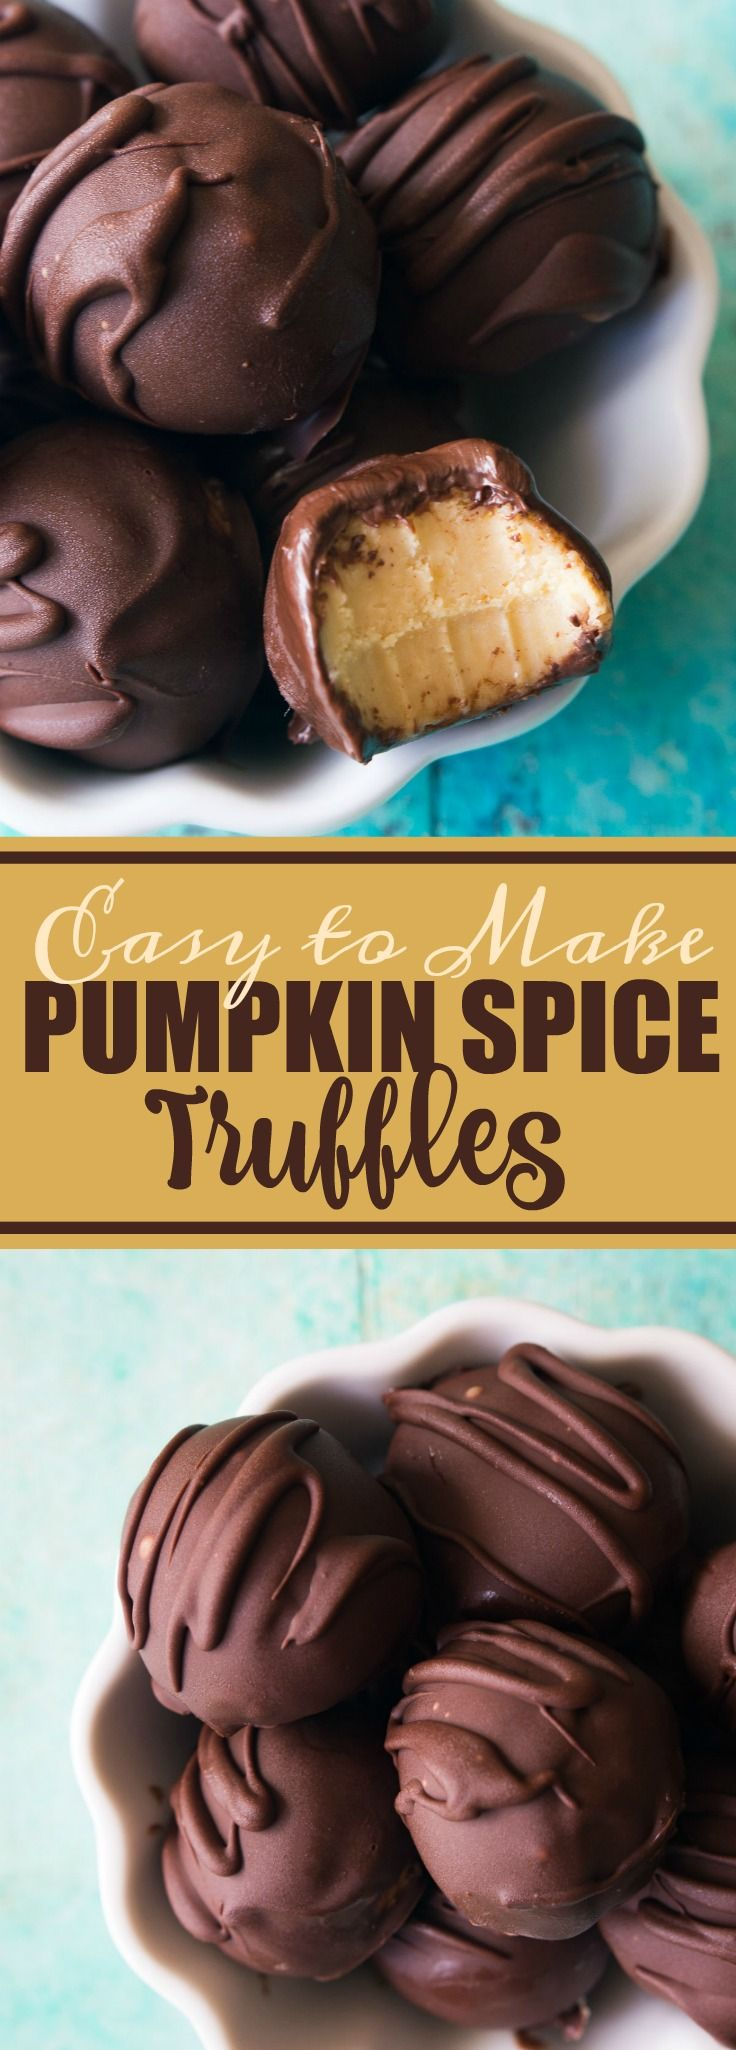 Pumpkin Spice Truffles! Smooth, creamy pumpkin spice ganache truffles coated with chocolate. Easy to make and only 5 ingredients!